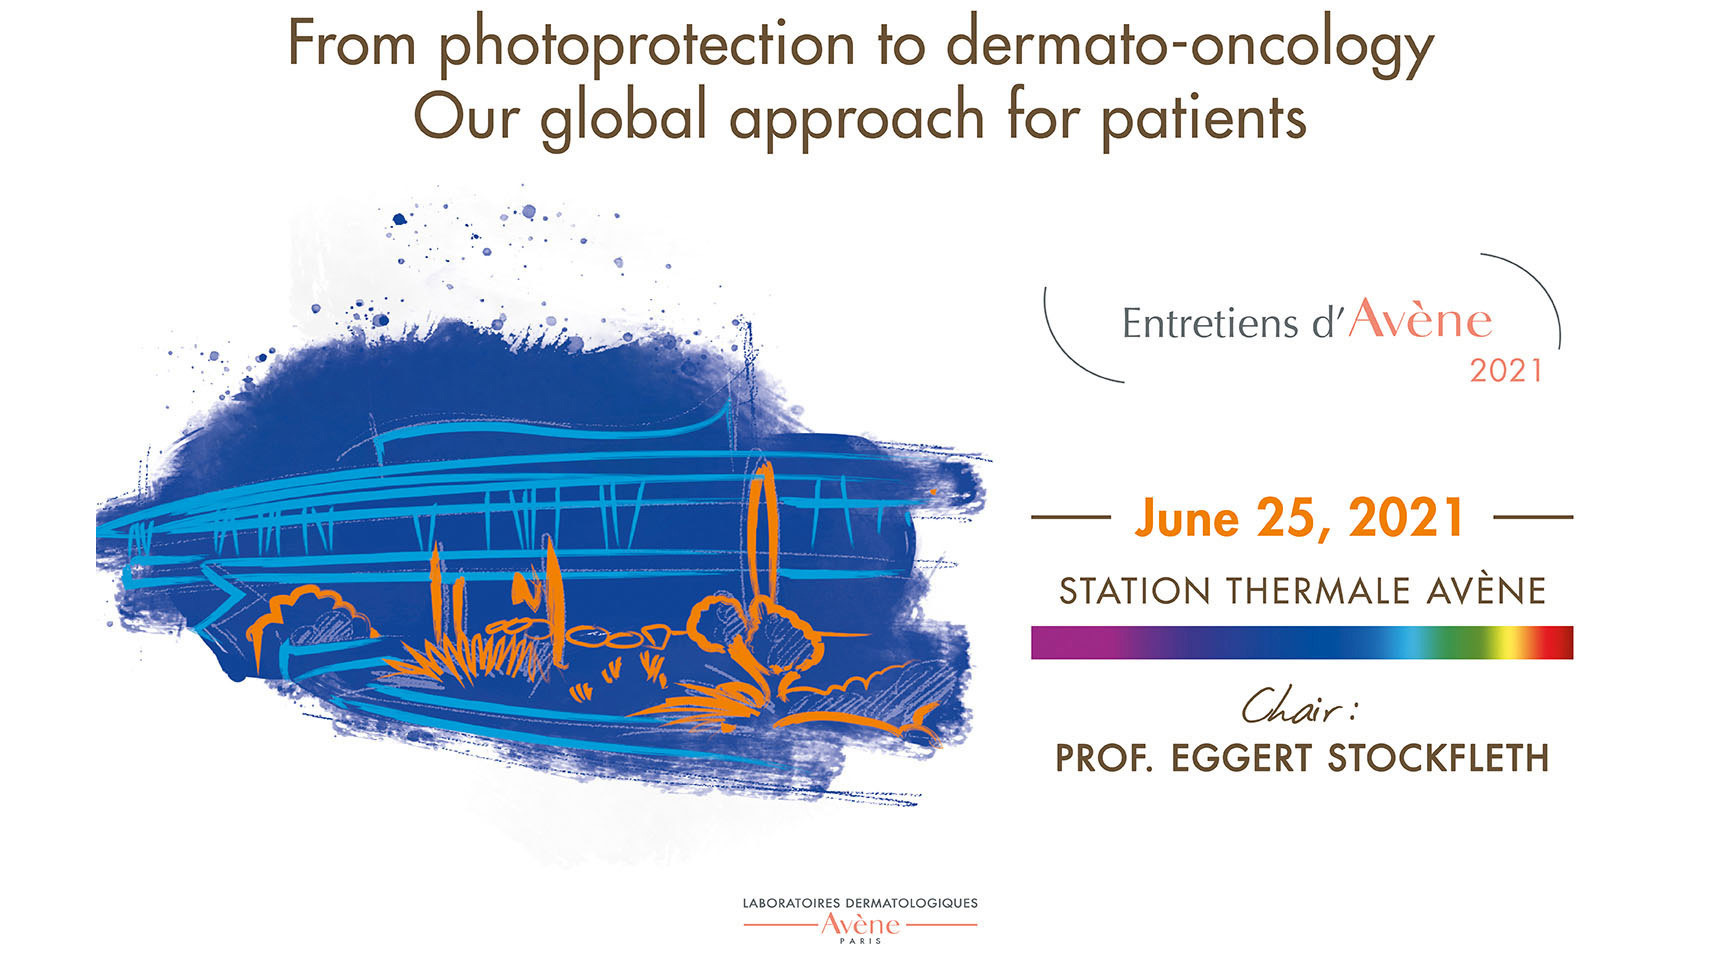 From photoprotection to dermato-oncology